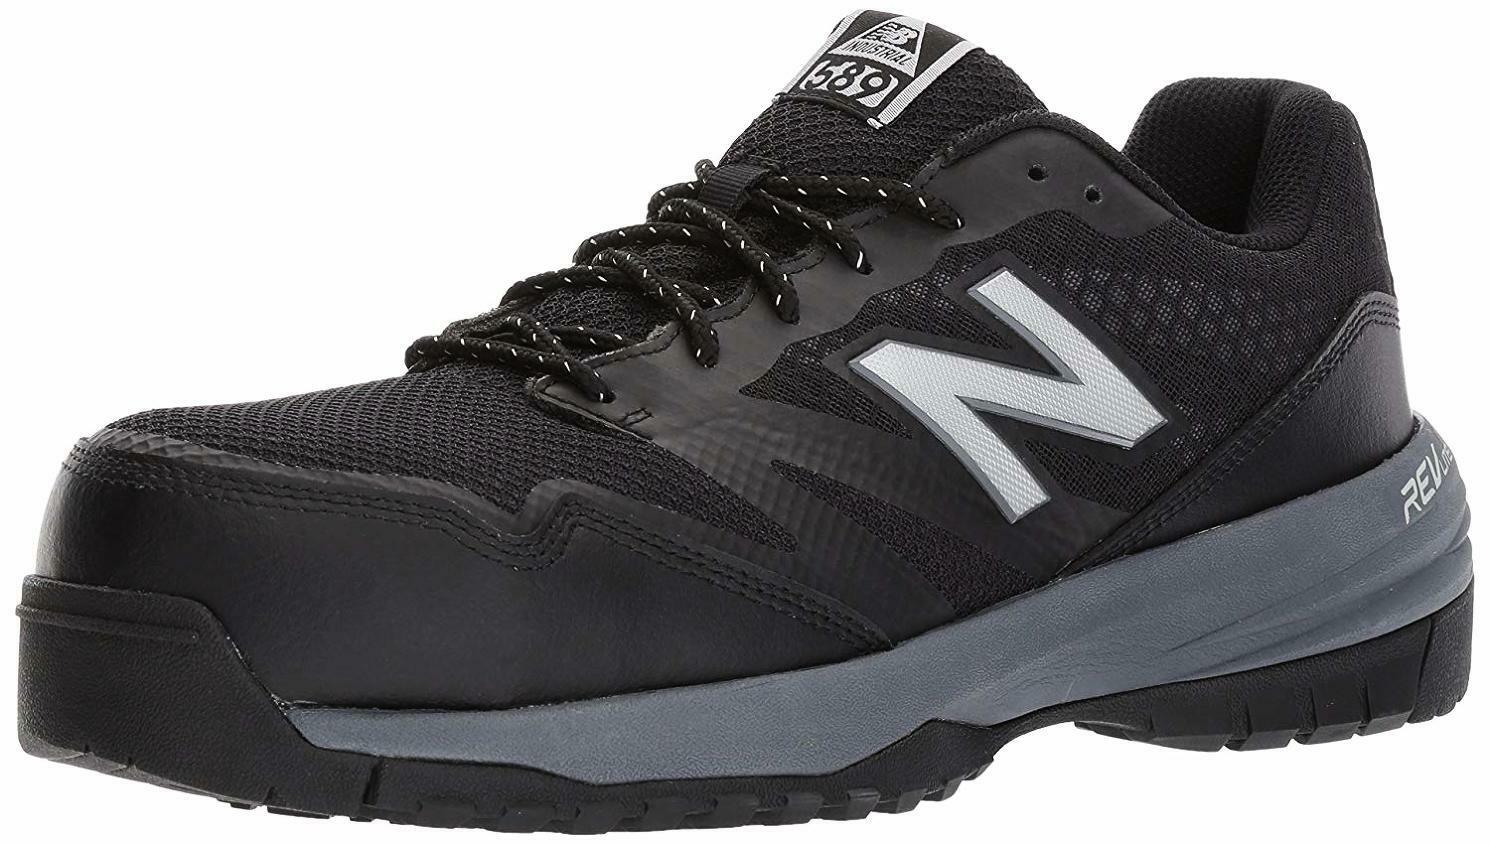 New Balance Men's 589V1 Work Training shoes - Choose SZ SZ SZ color 3e8d77